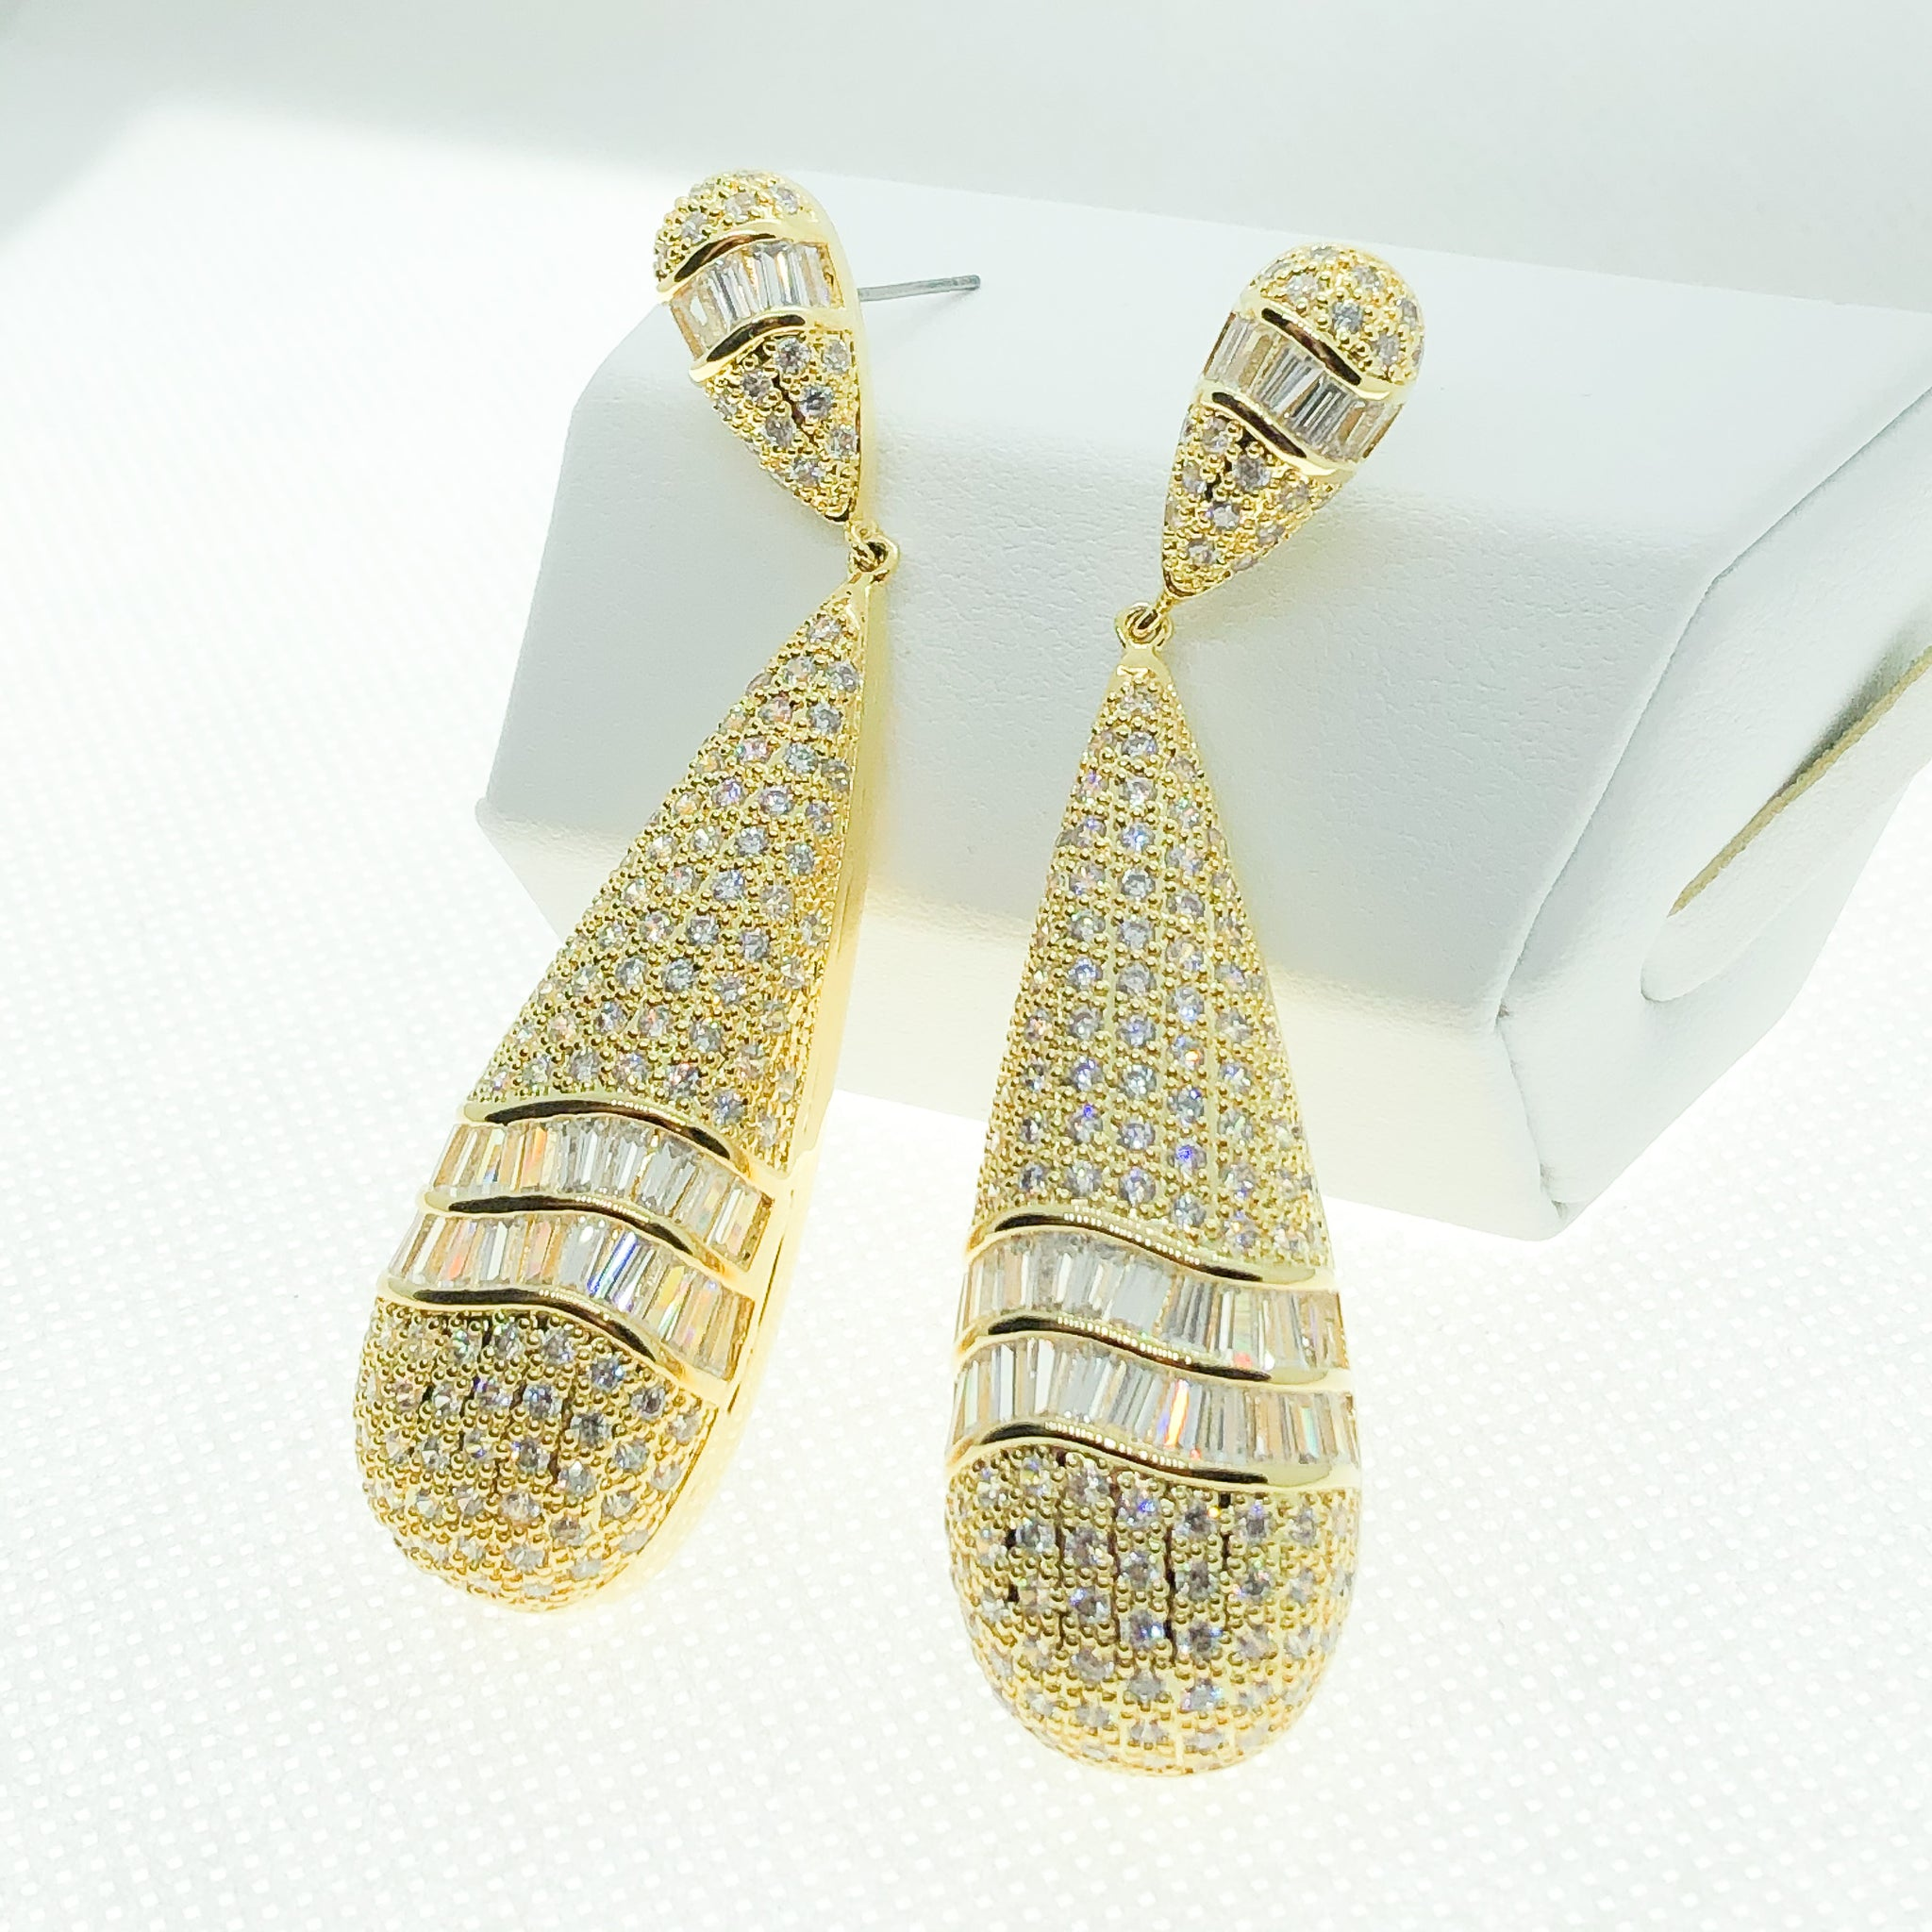 ID: E4705 WOMEN JEWELRY 18K YELLOW GOLD GF CLEAR STONES EARRINGS FASHION LADY  ENGAGEMENT WEDDING PARTY DROP LUXURY DANGLE